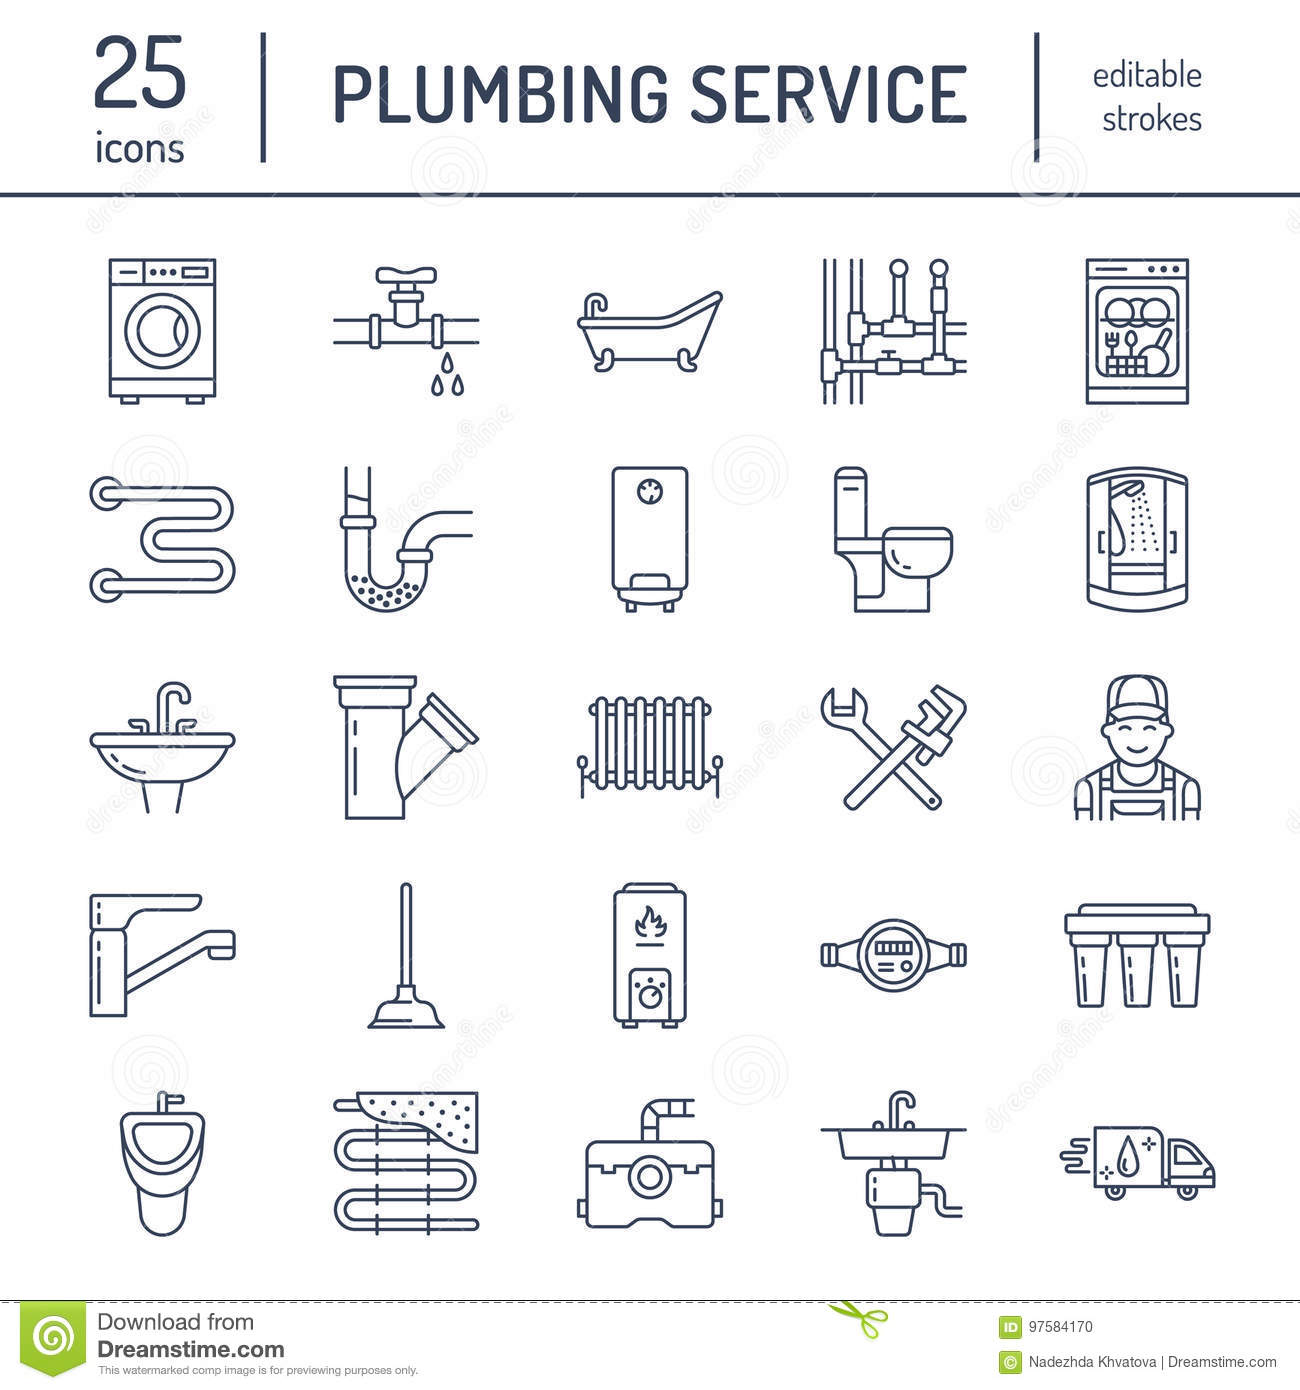 hight resolution of plumbing service vector flat line icons house bathroom equipment faucet toilet pipeline washing machine dishwasher plumber repair illustration